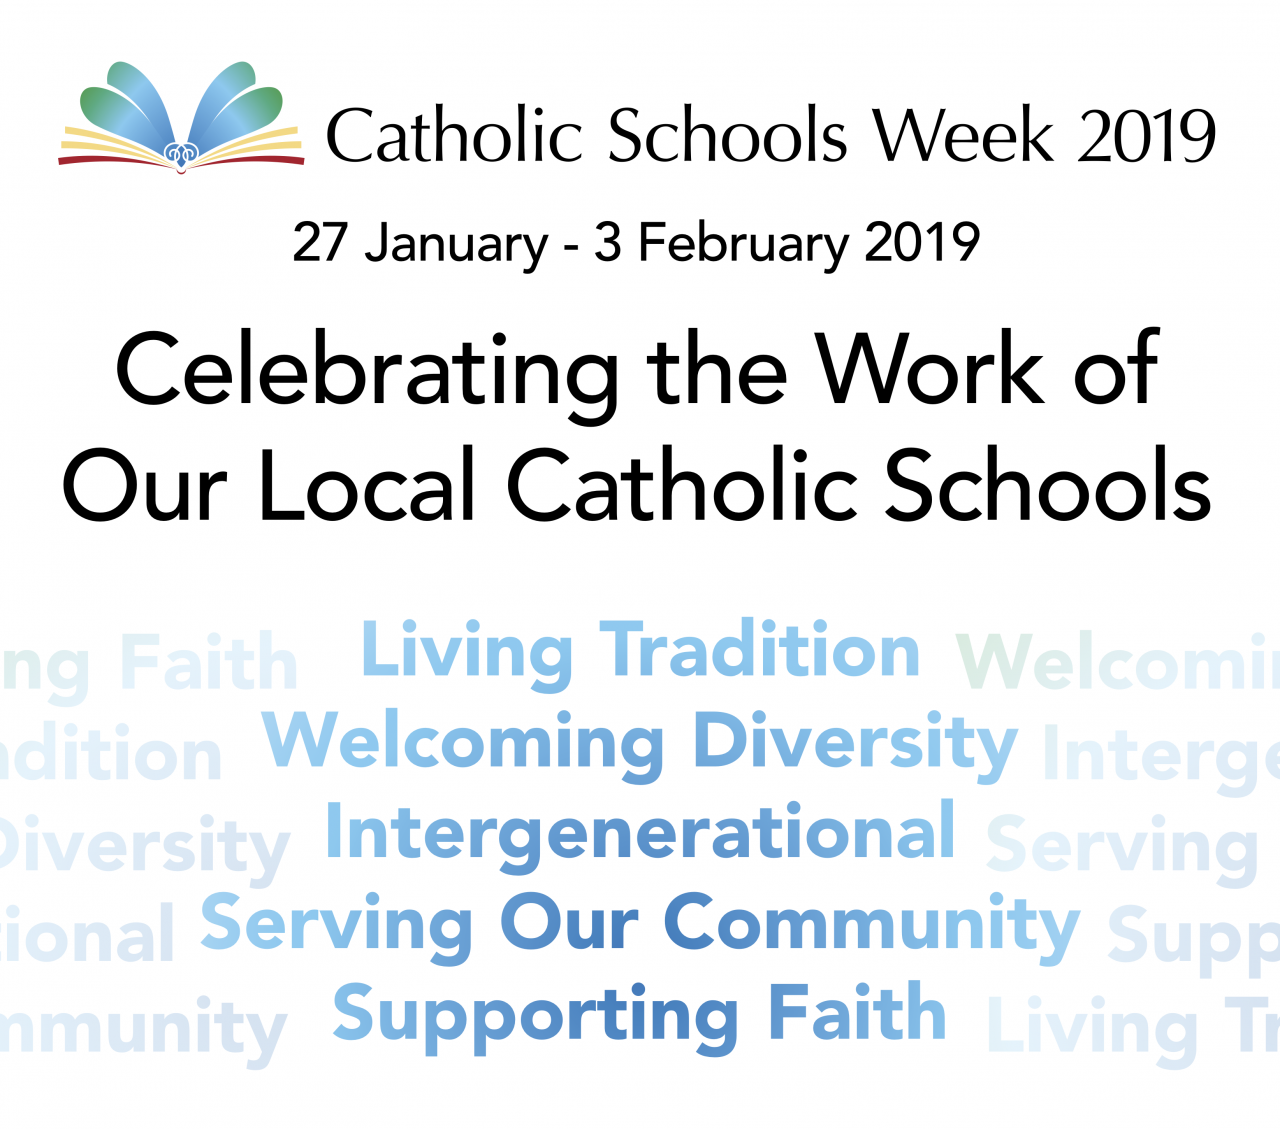 Celebrating Catholic Schools Week 2019 - 27 January - 3 February 2019